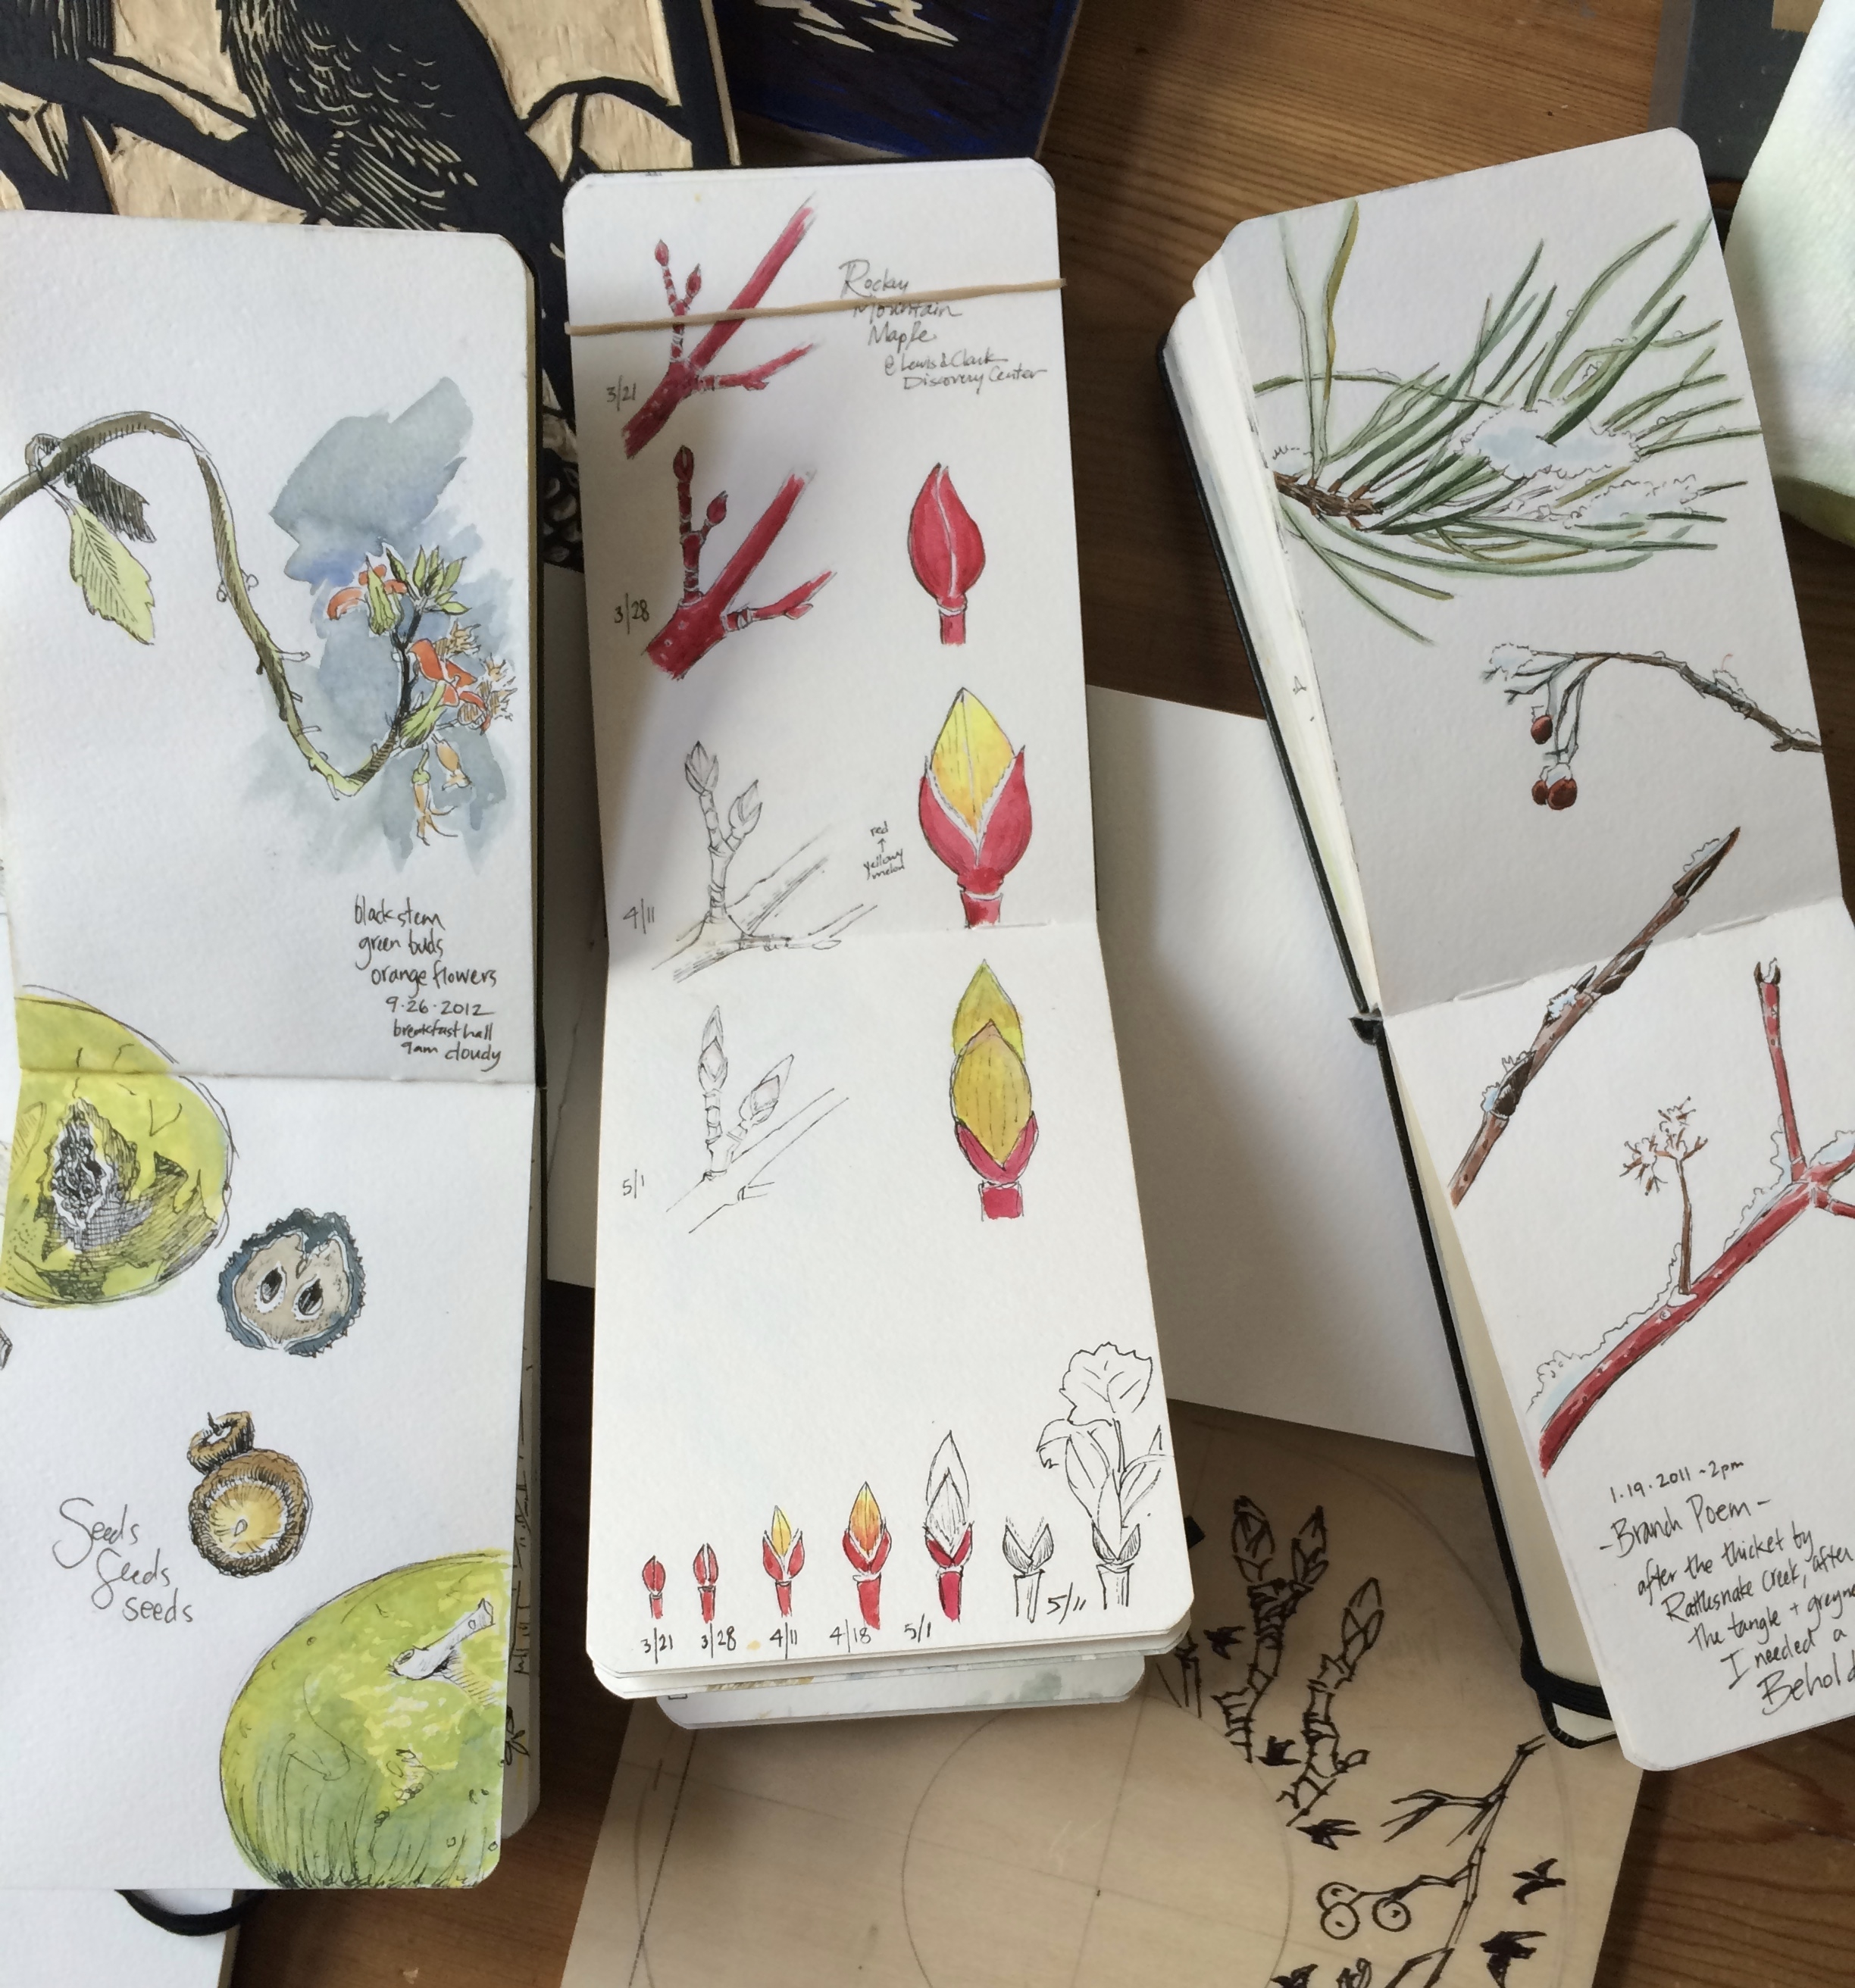 Field sketches in fall, winter and spring of seasonal discoveries.